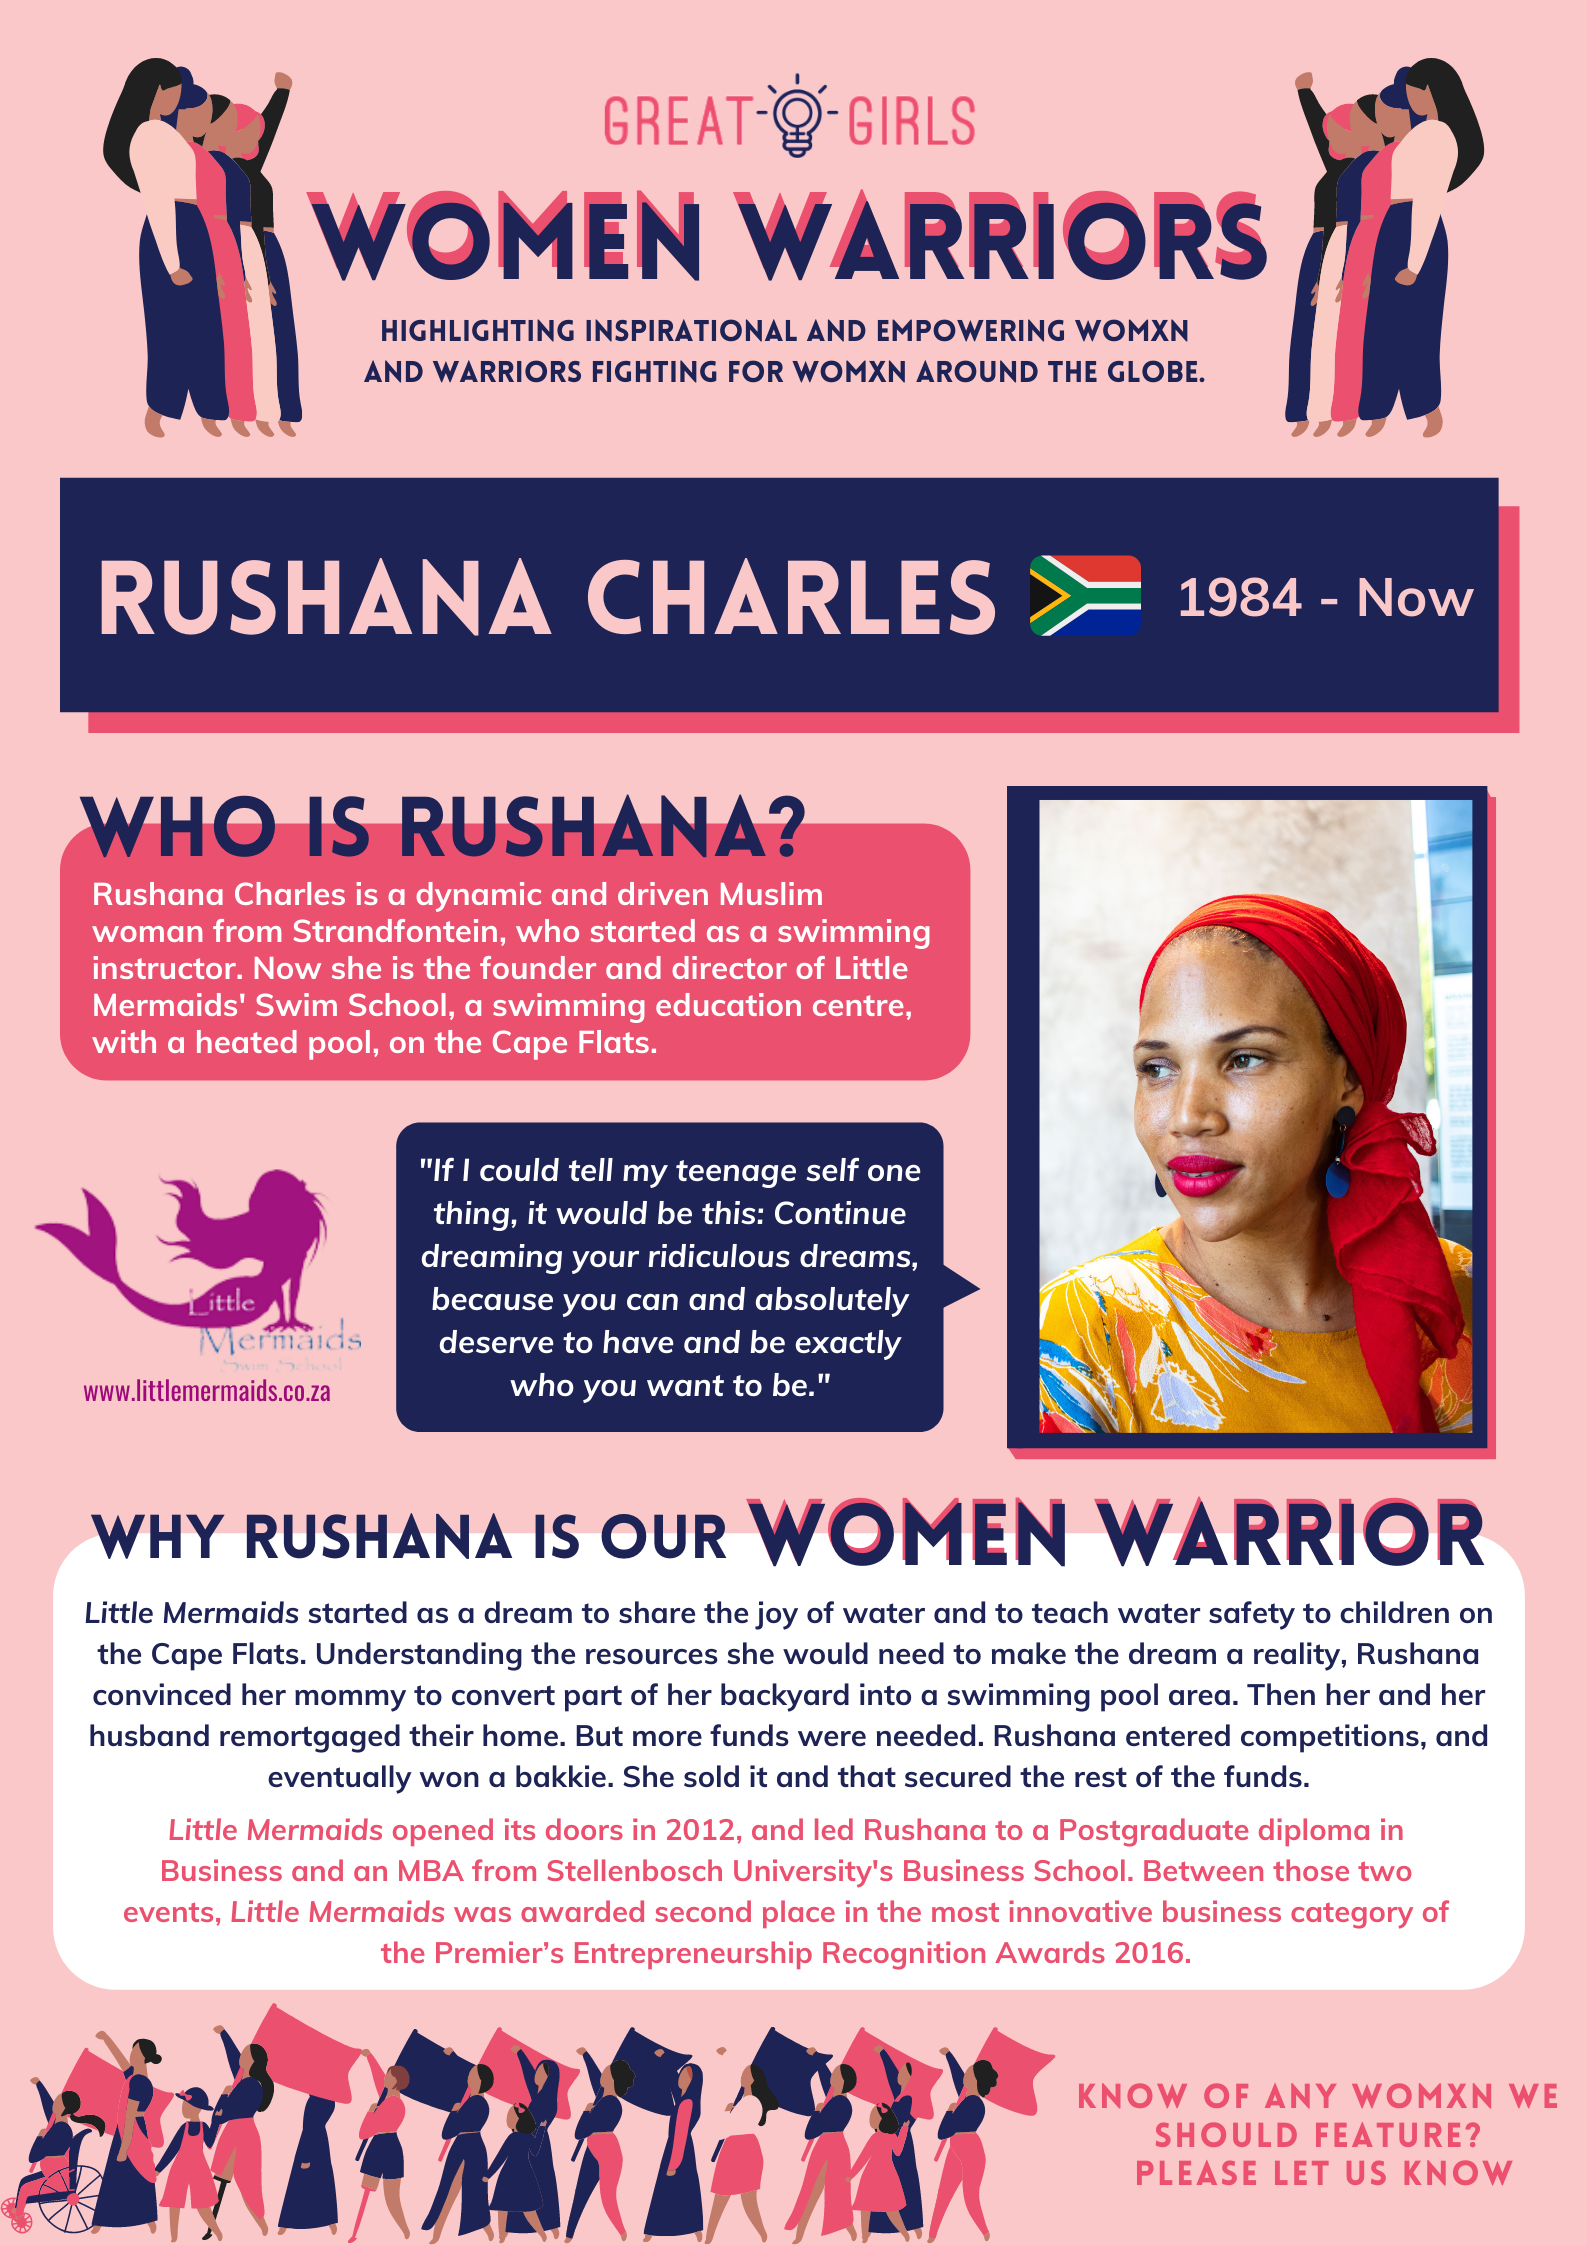 Women Warrior - Rushana Charles